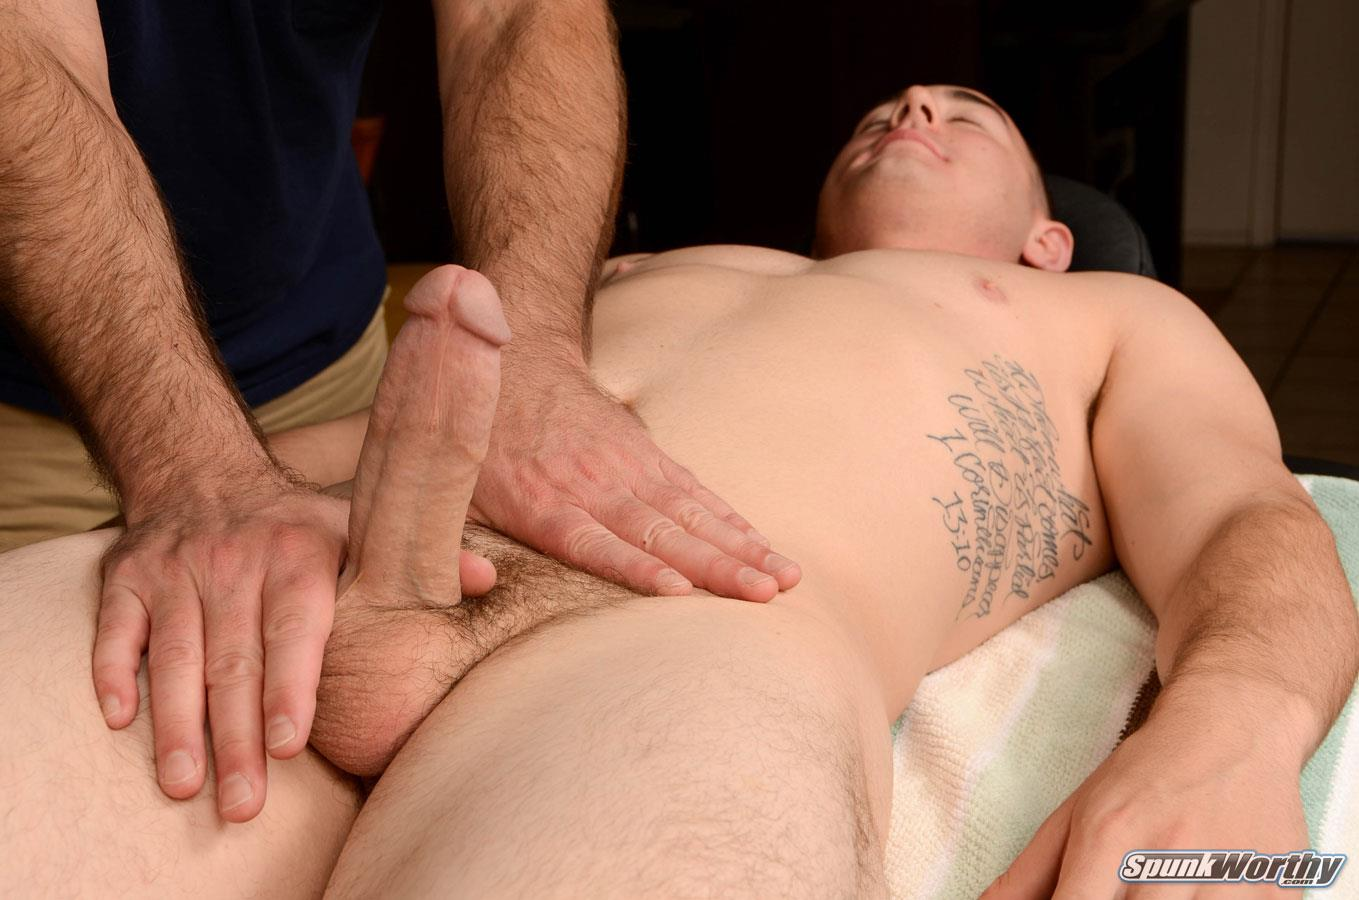 SpunkWorthy Damian Straight Marine Gets a Handjob From A Guy Amateur Gay Porn 11 Straight 22 Year Old Marine Gets A Handjob From A Guy